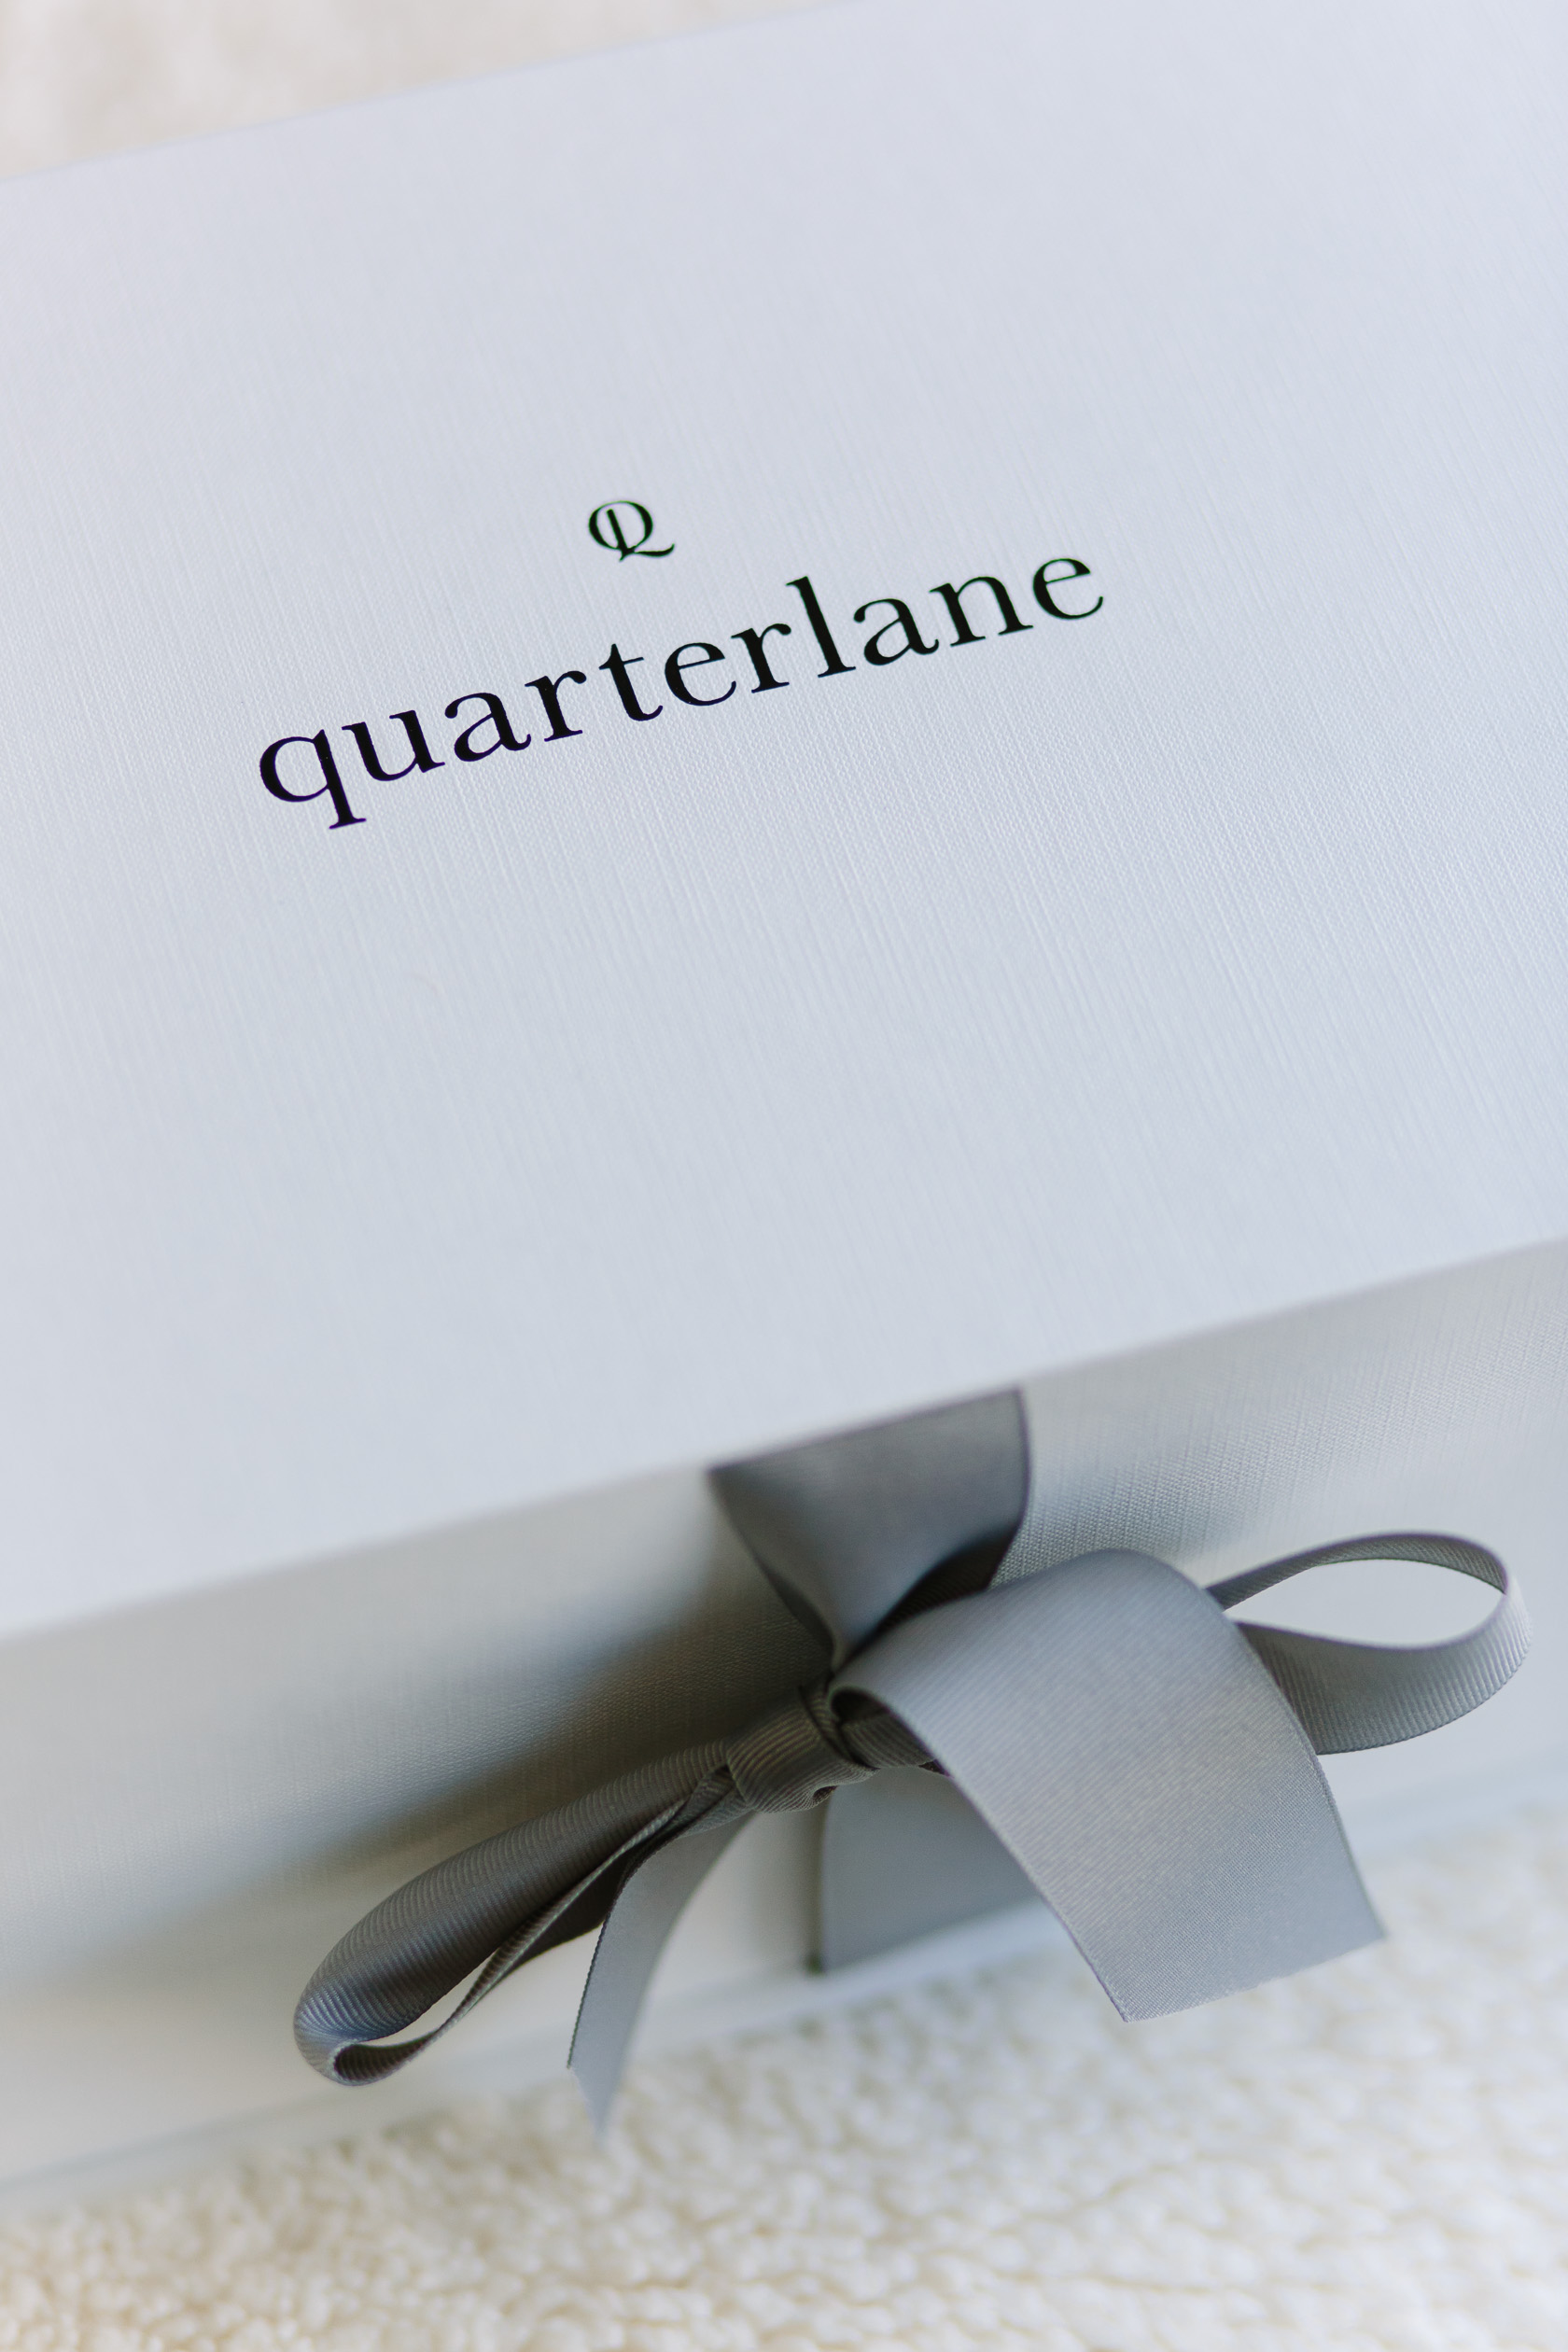 quarterlane-books-6124